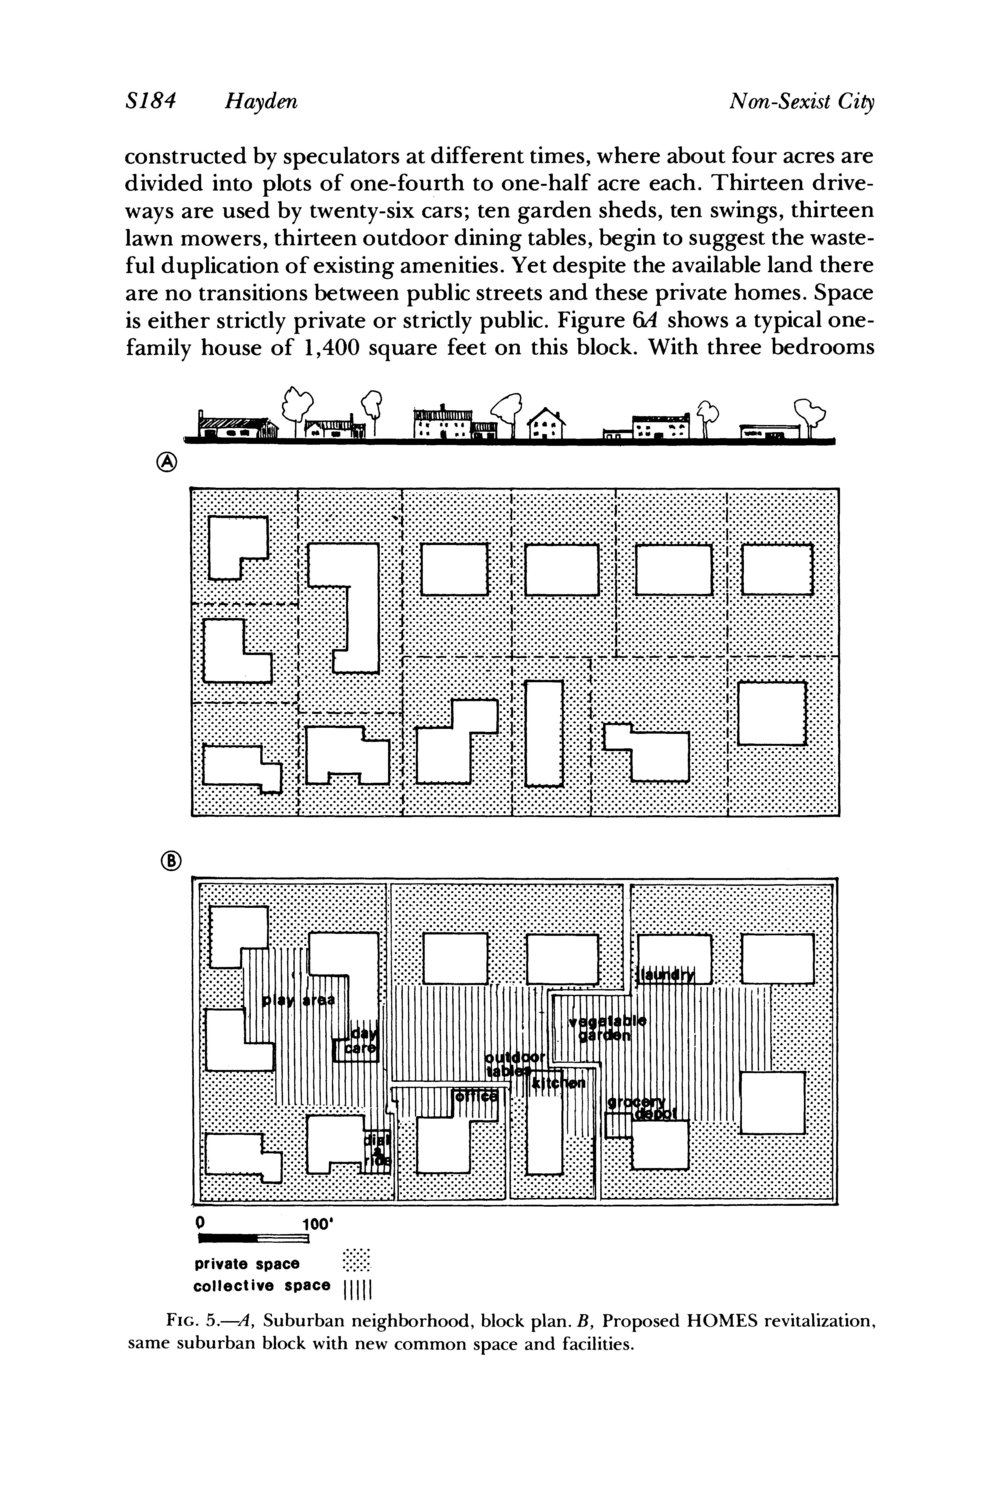 Images of Dolores Hayden's Non-Sexist City, reprinted in  Gender, Space and Architecture: An Interdisciplinary Introduction  (Routledge, 1999).